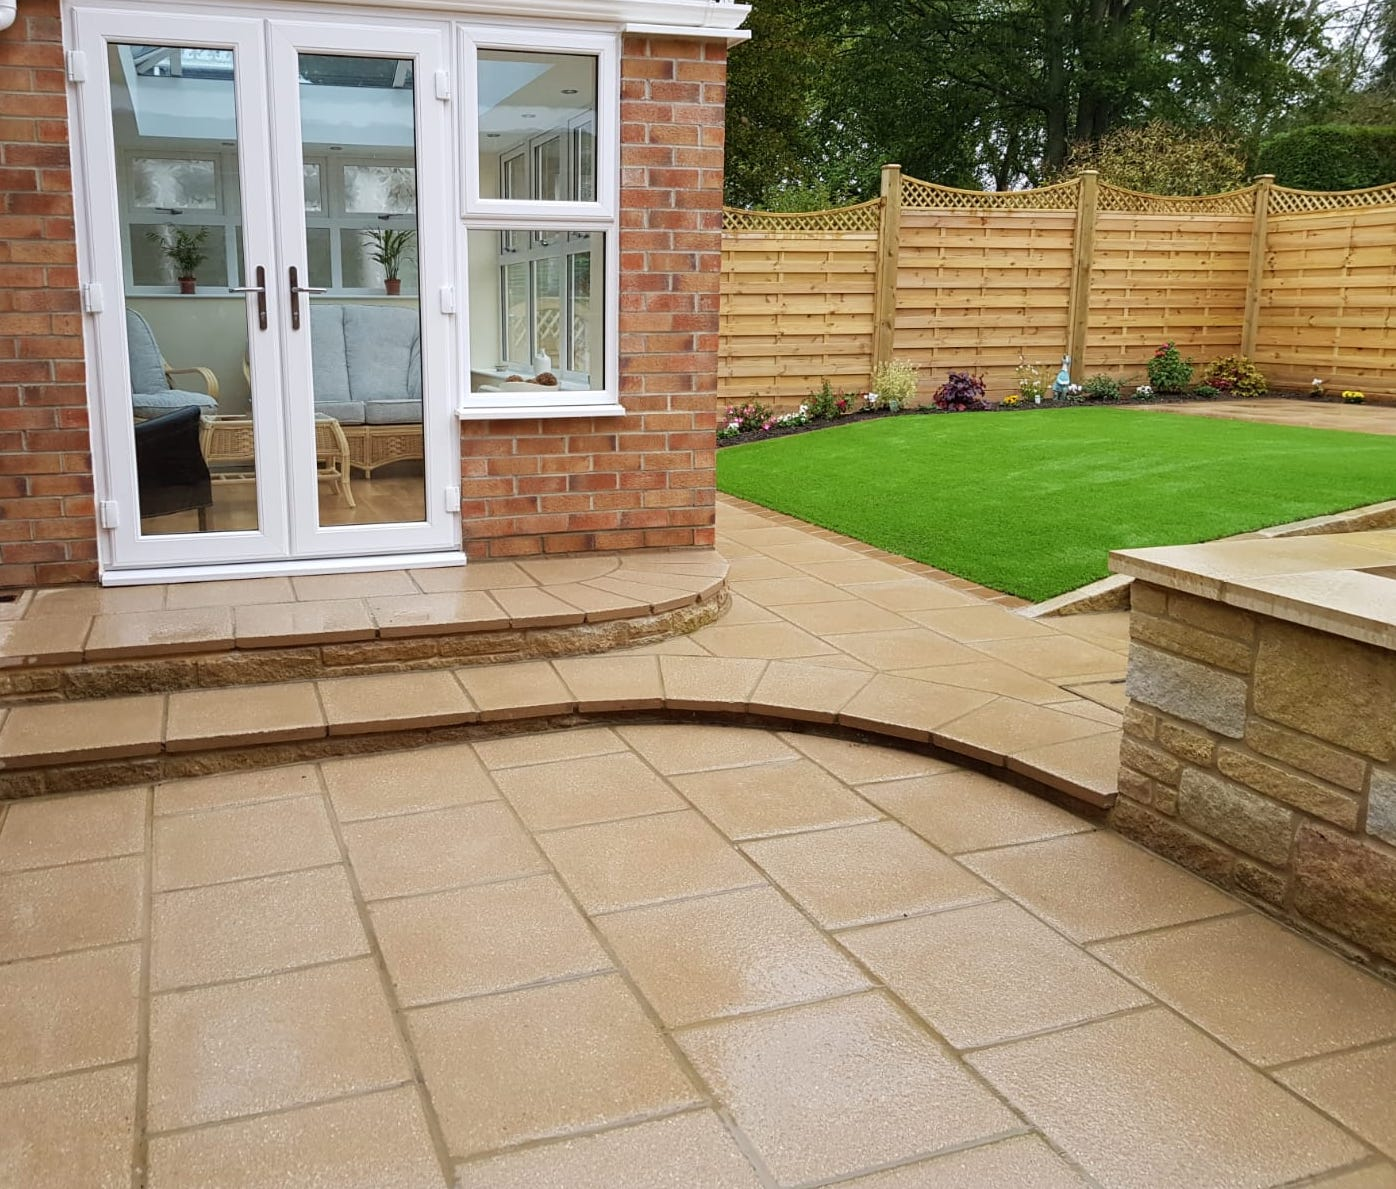 Textured paved path with conservatory